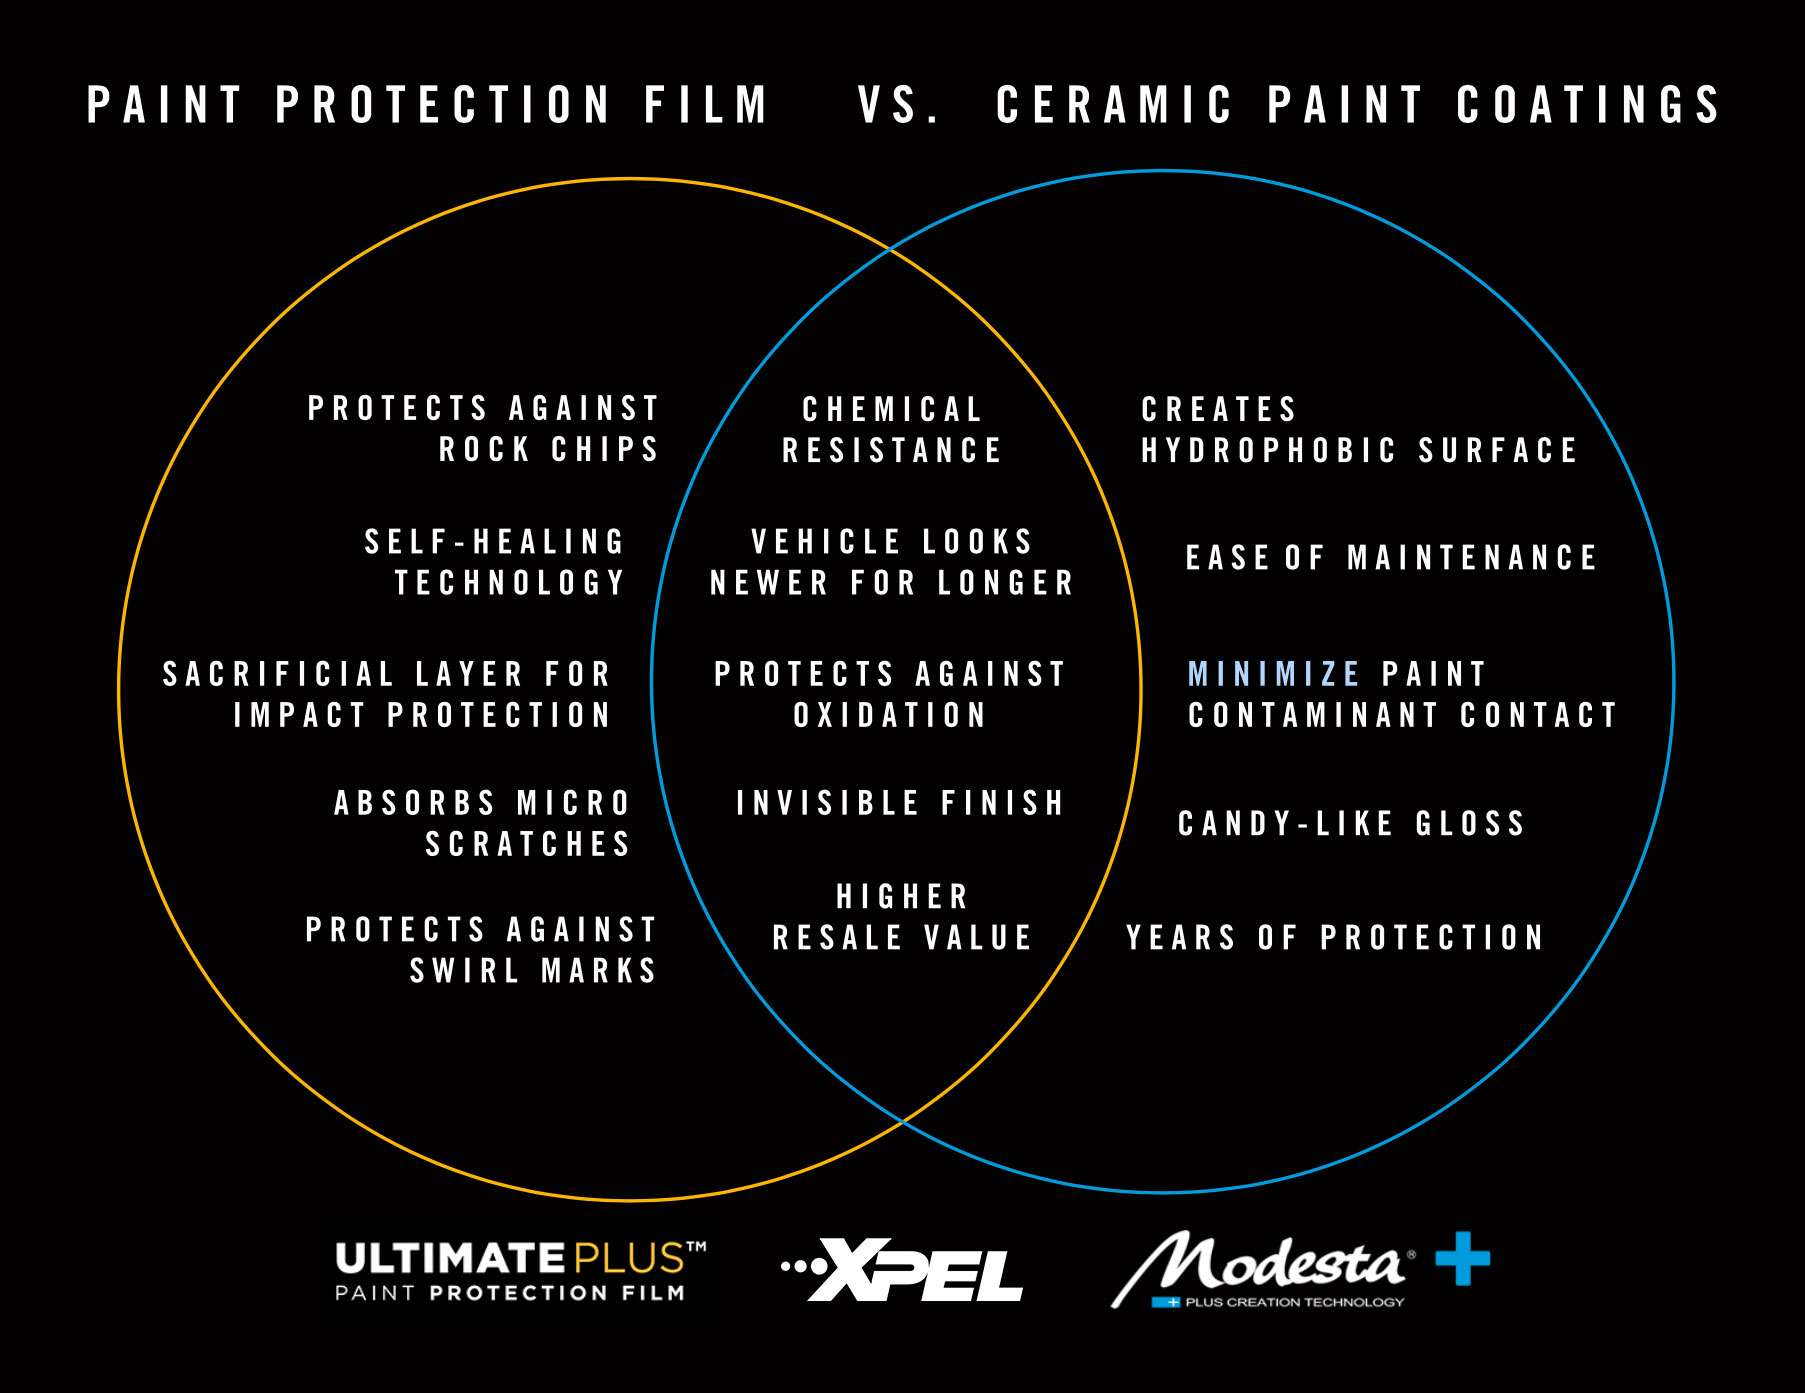 VennDiagram protection vs coating